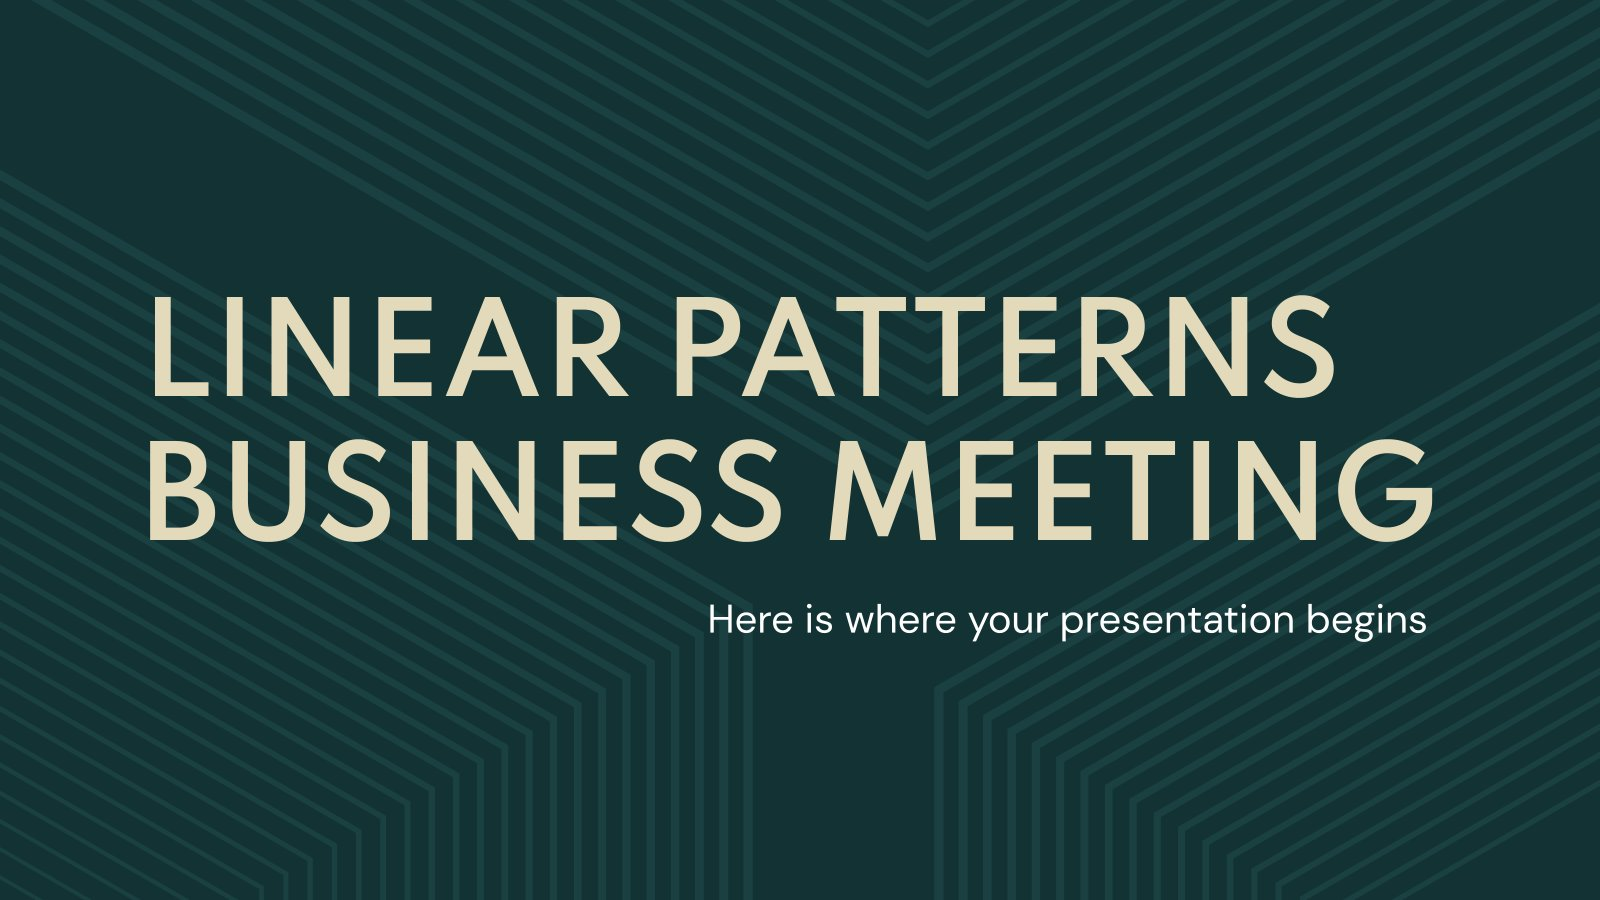 Linear Patterns Business Meeting presentation template